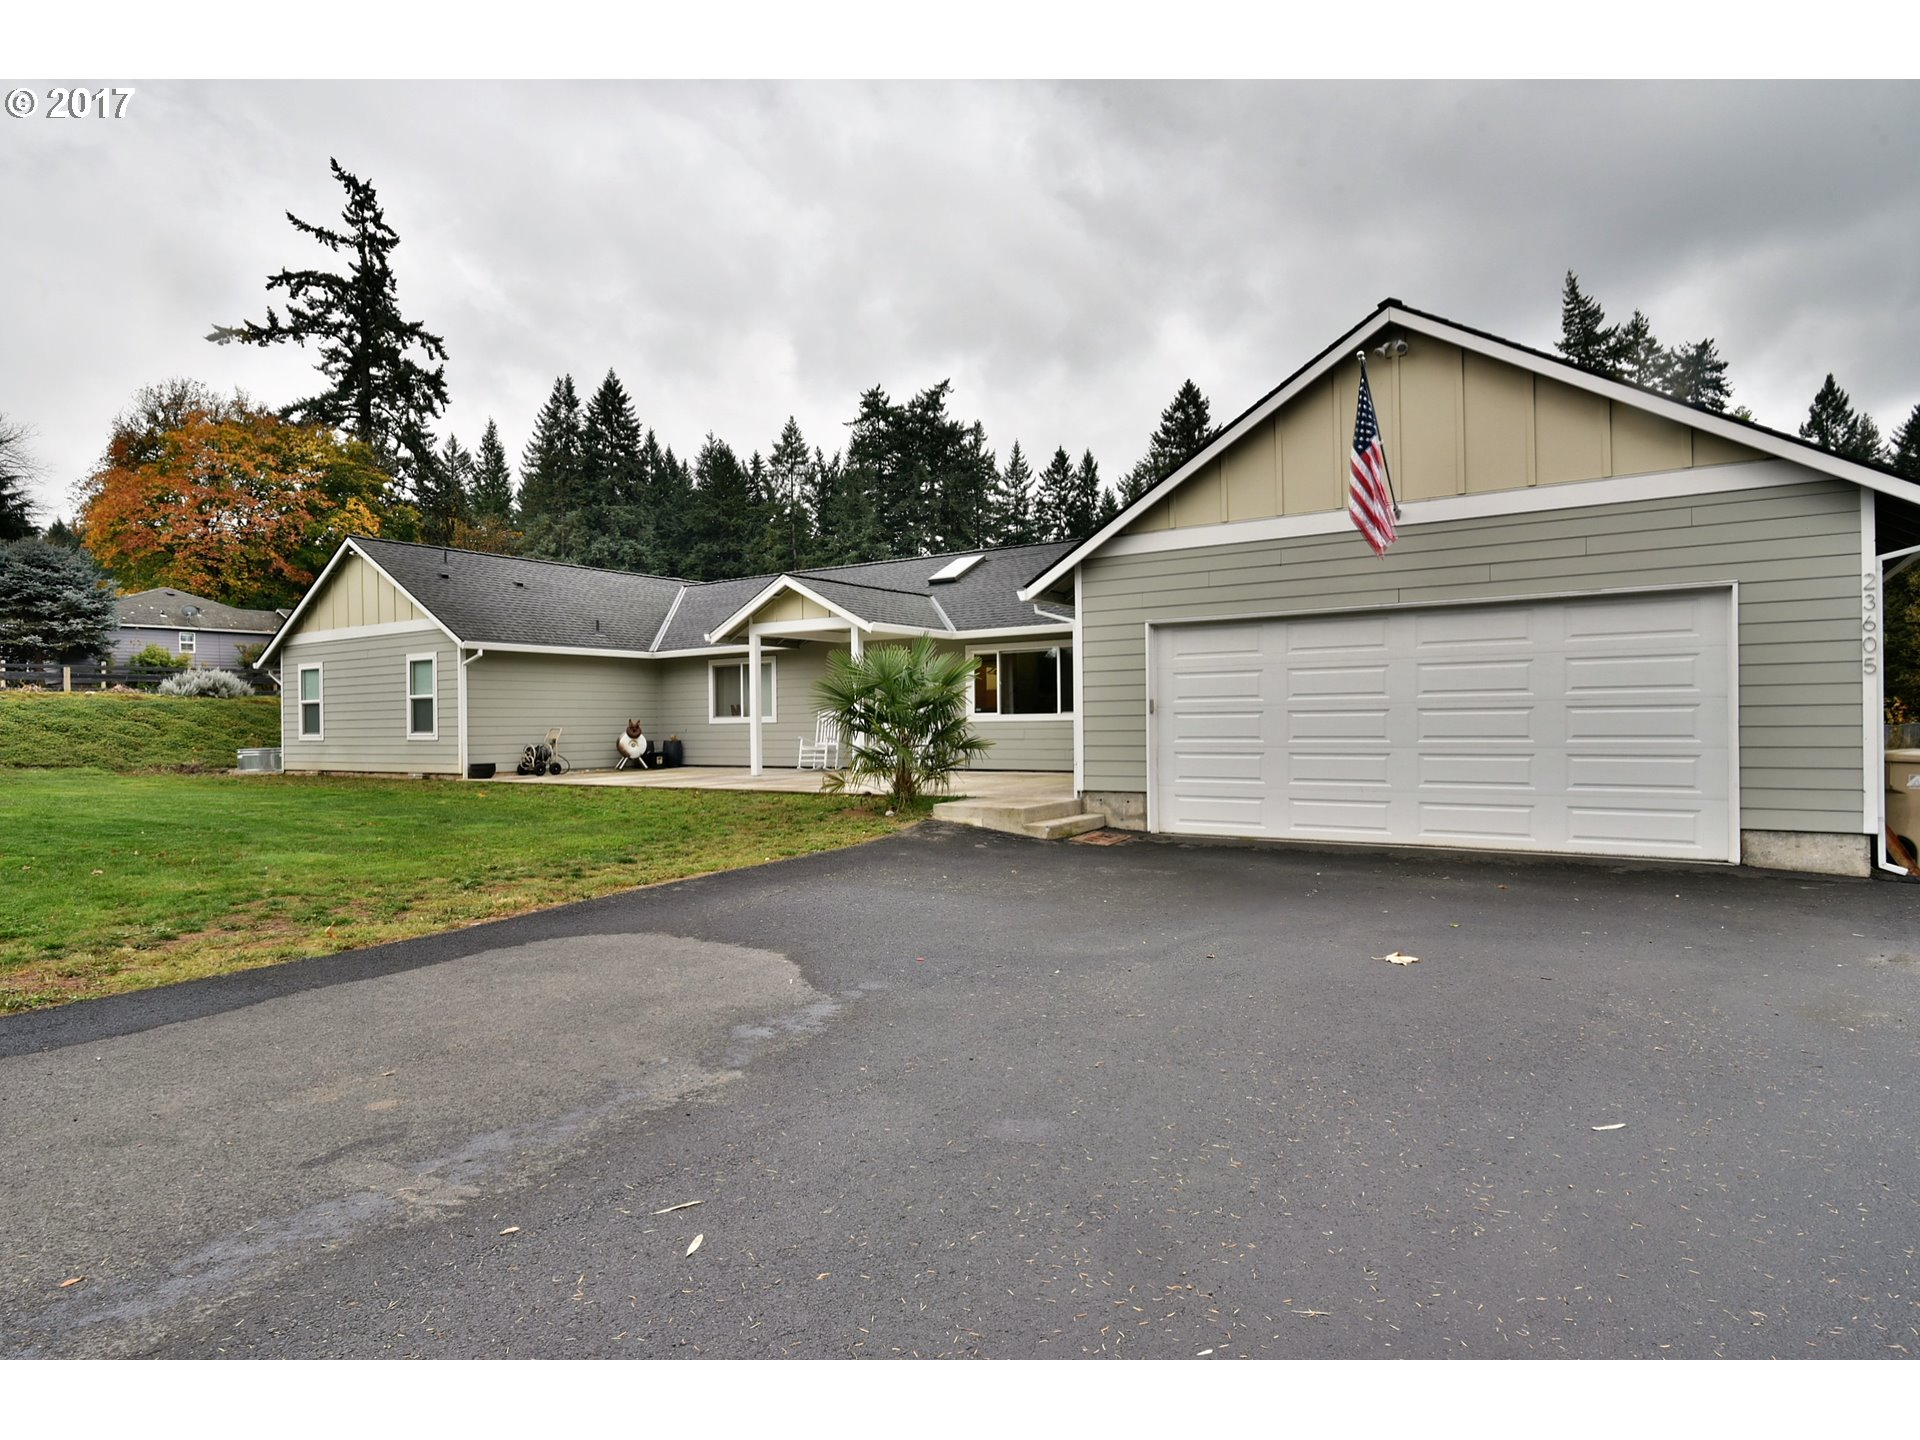 23605 SW 82ND AVE, Tualatin, OR 97062